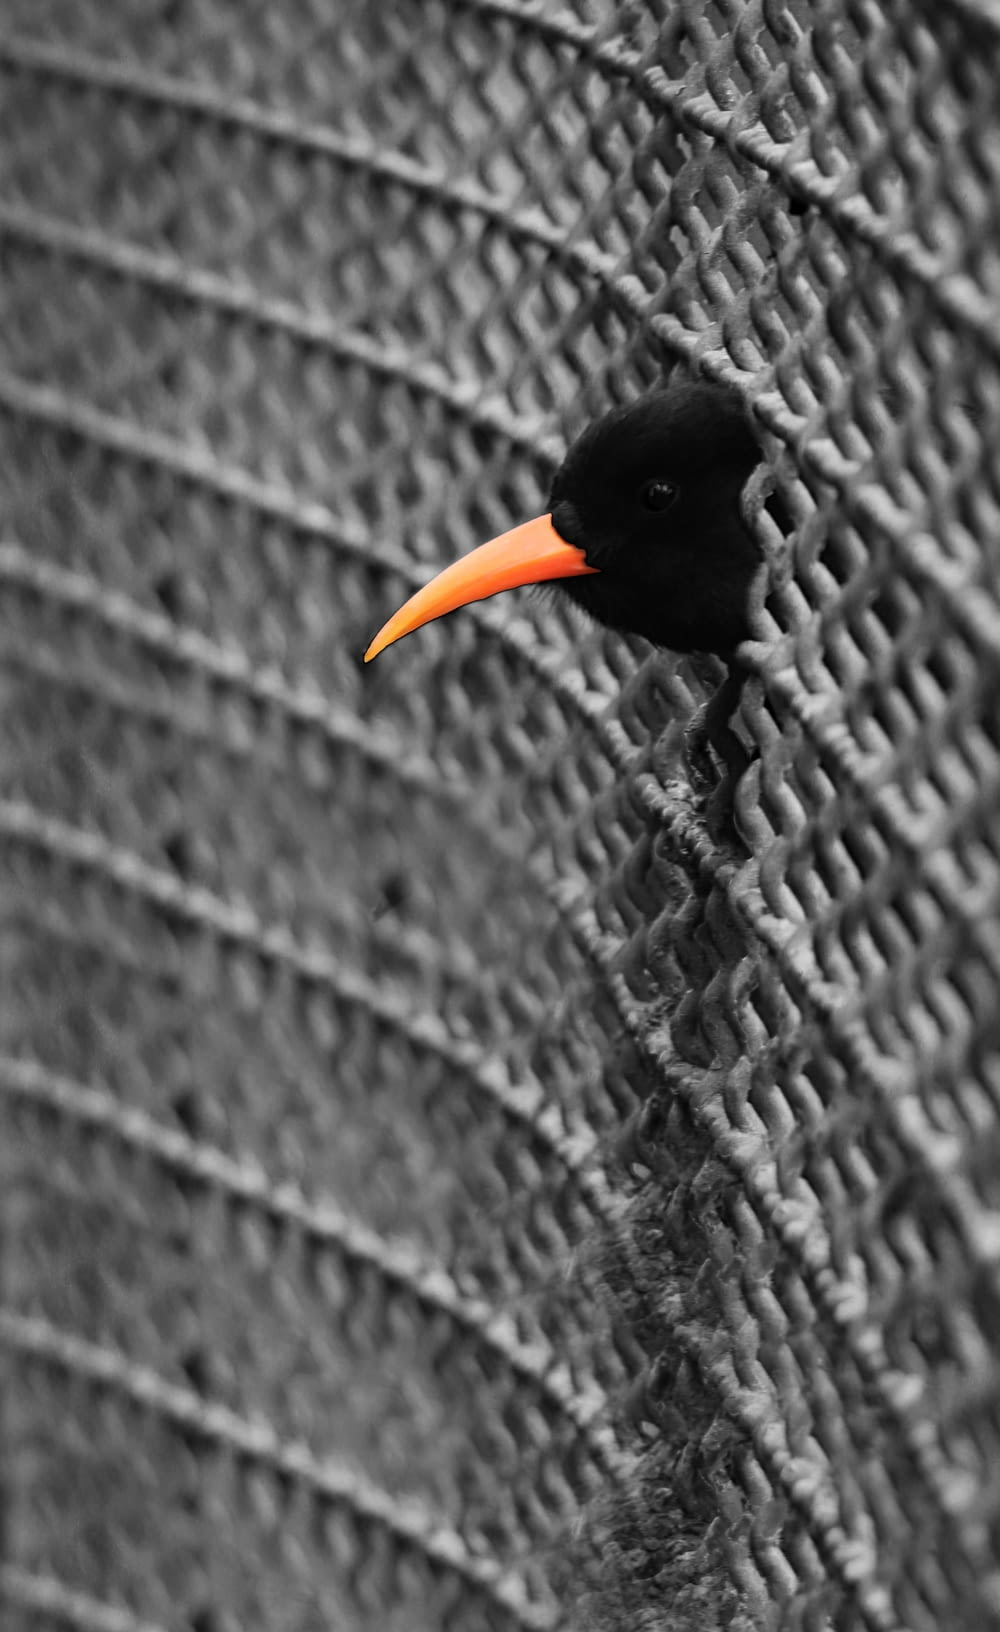 black and yellow bird on brown rope